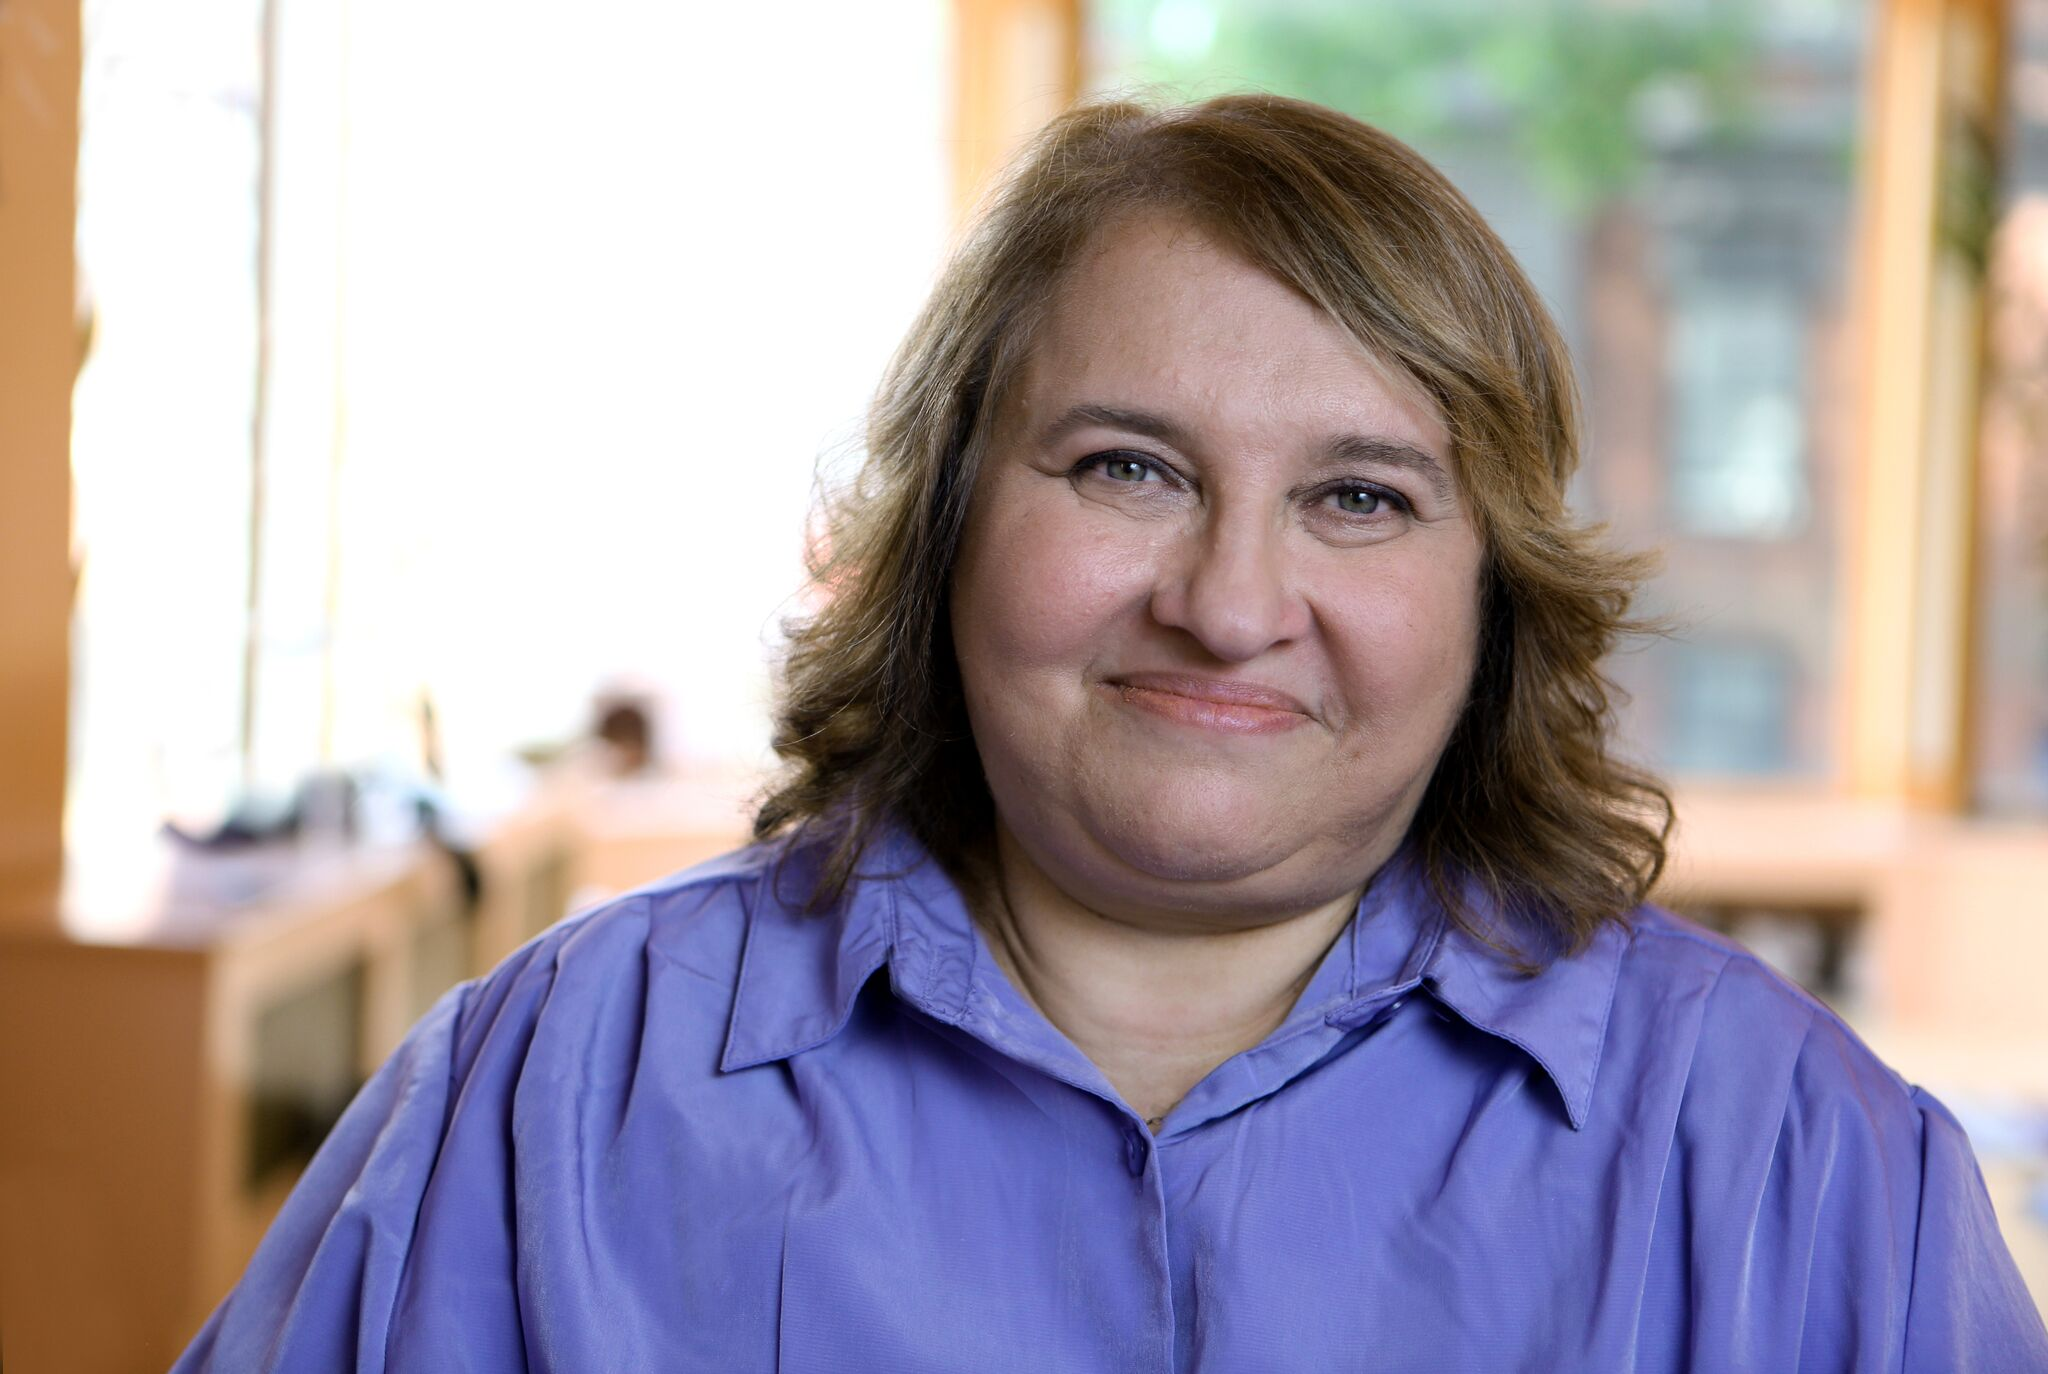 Sharon Salzberg, Author and Teacher of Buddhist Meditation Practices in the West